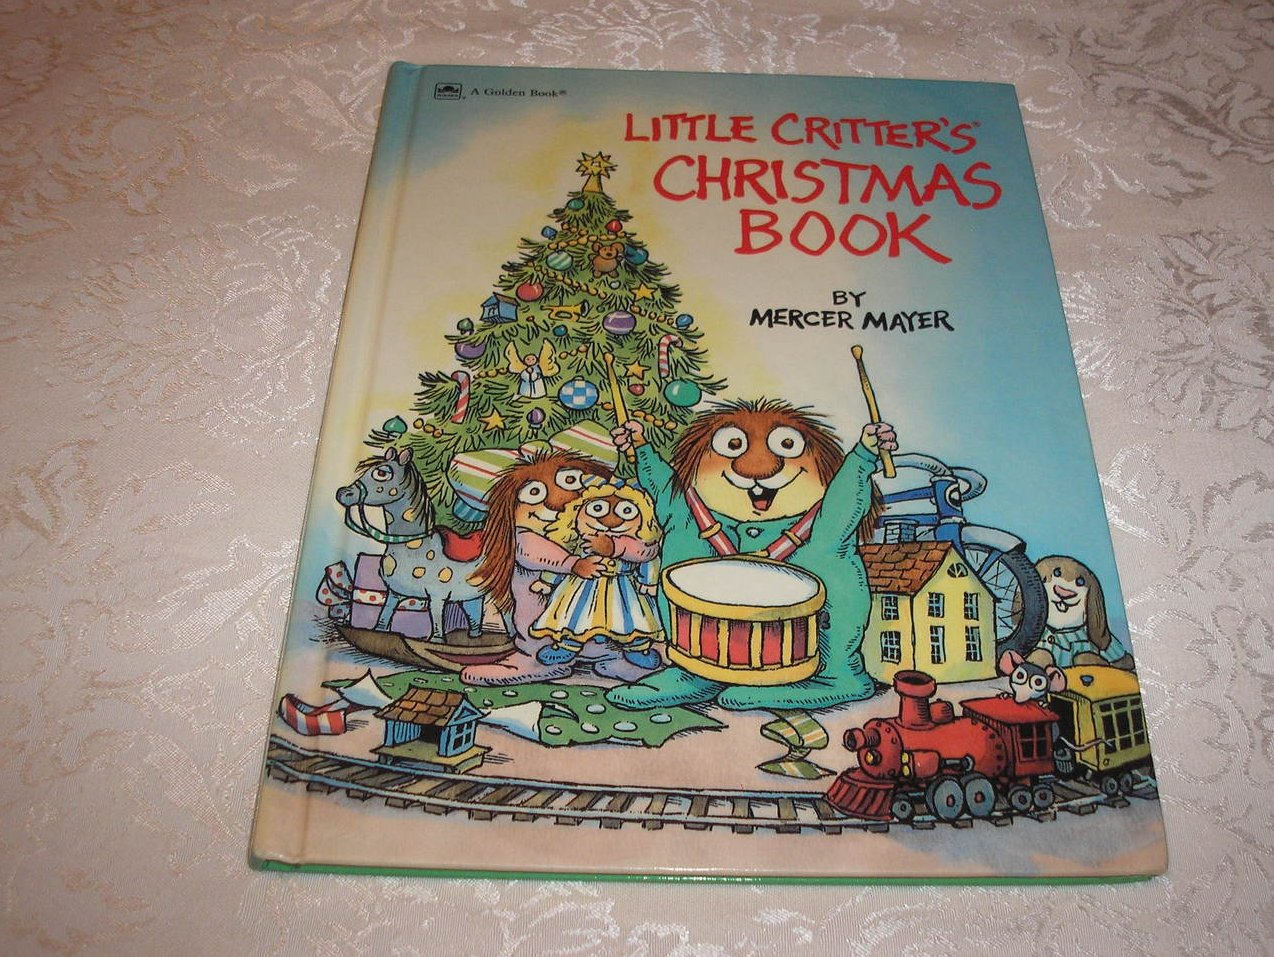 Little Critter's Christmas Book Mercer Mayer good 1989 hc